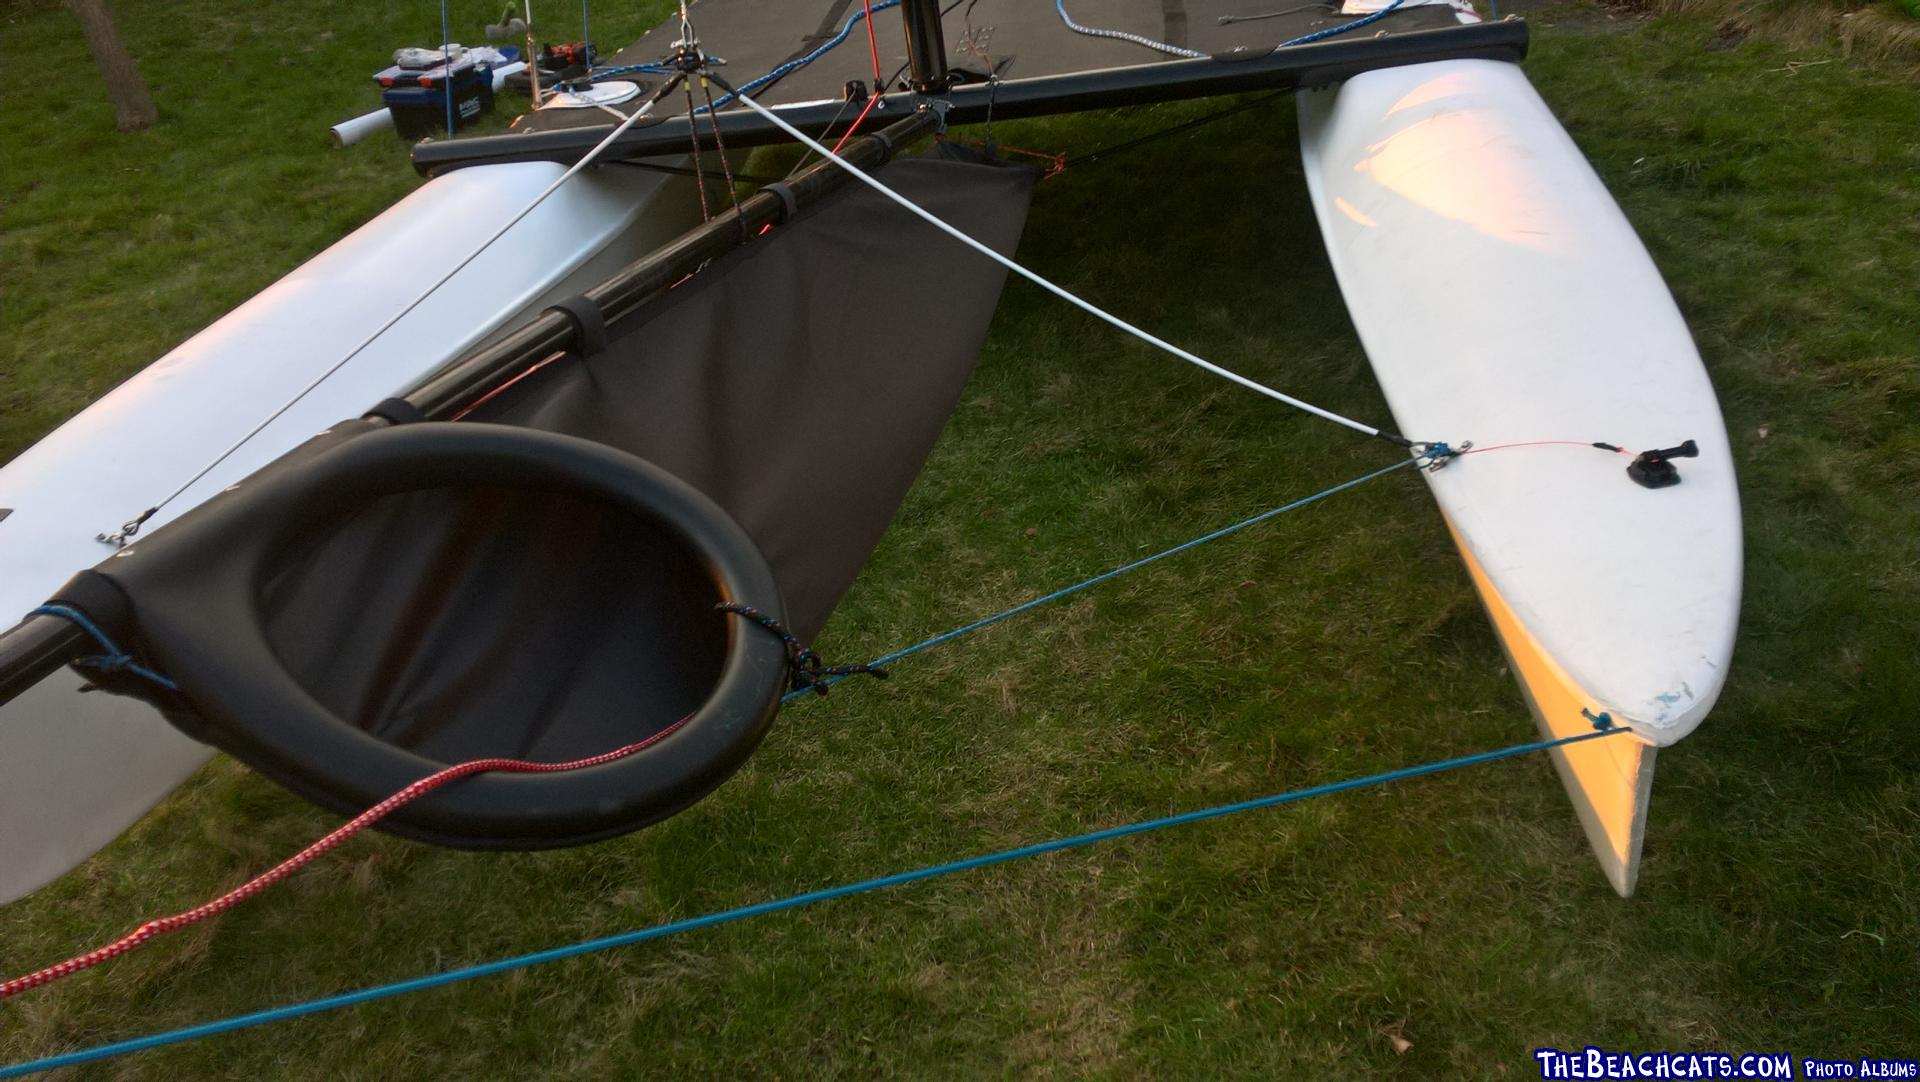 Snuffer comes from Nacra F18